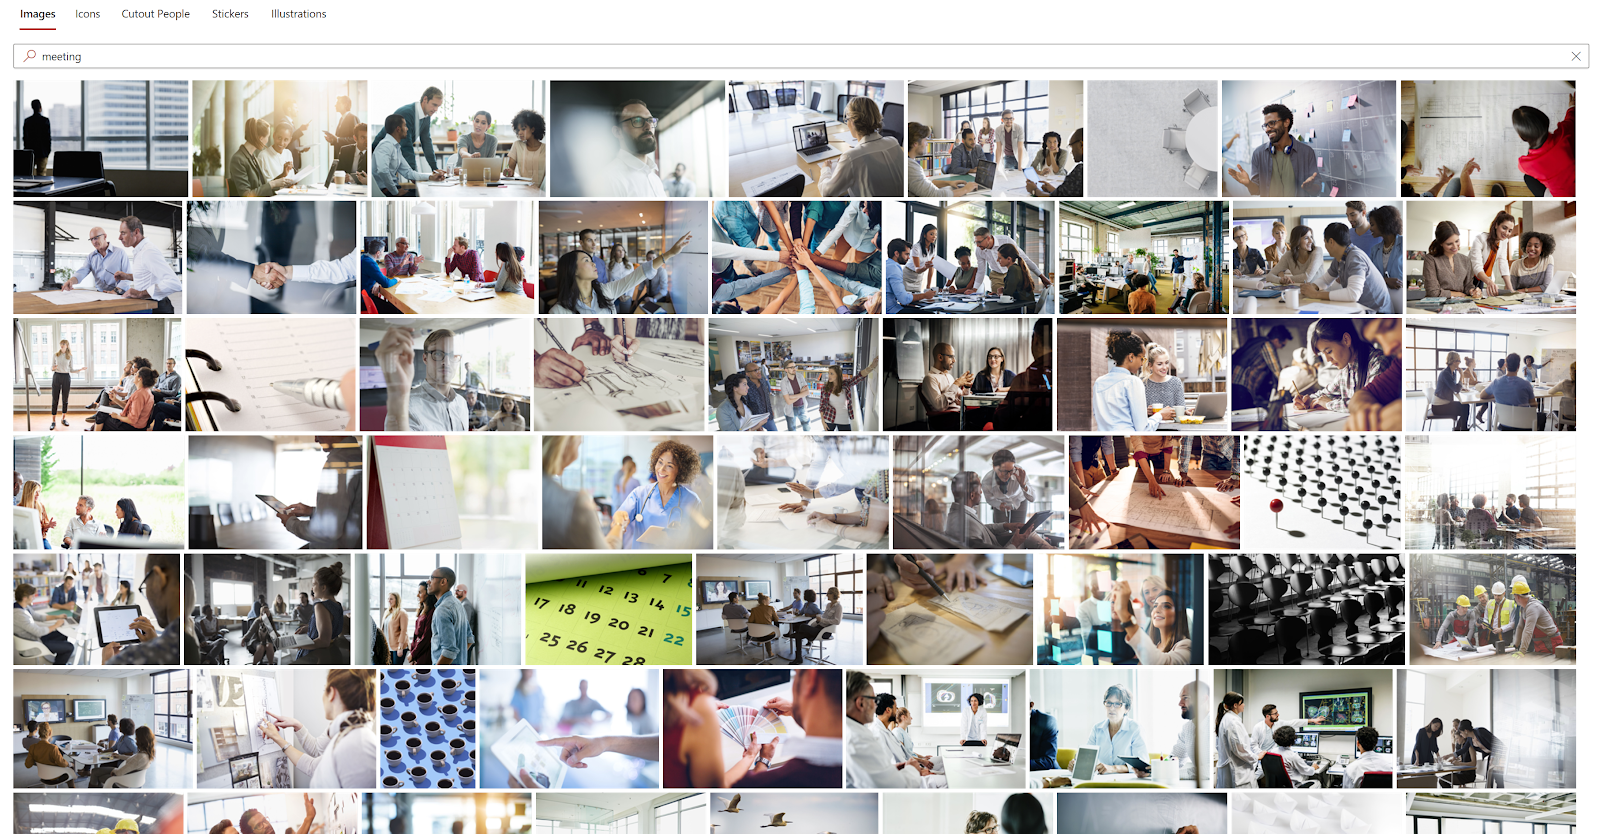 Screenshot of many images of meetings